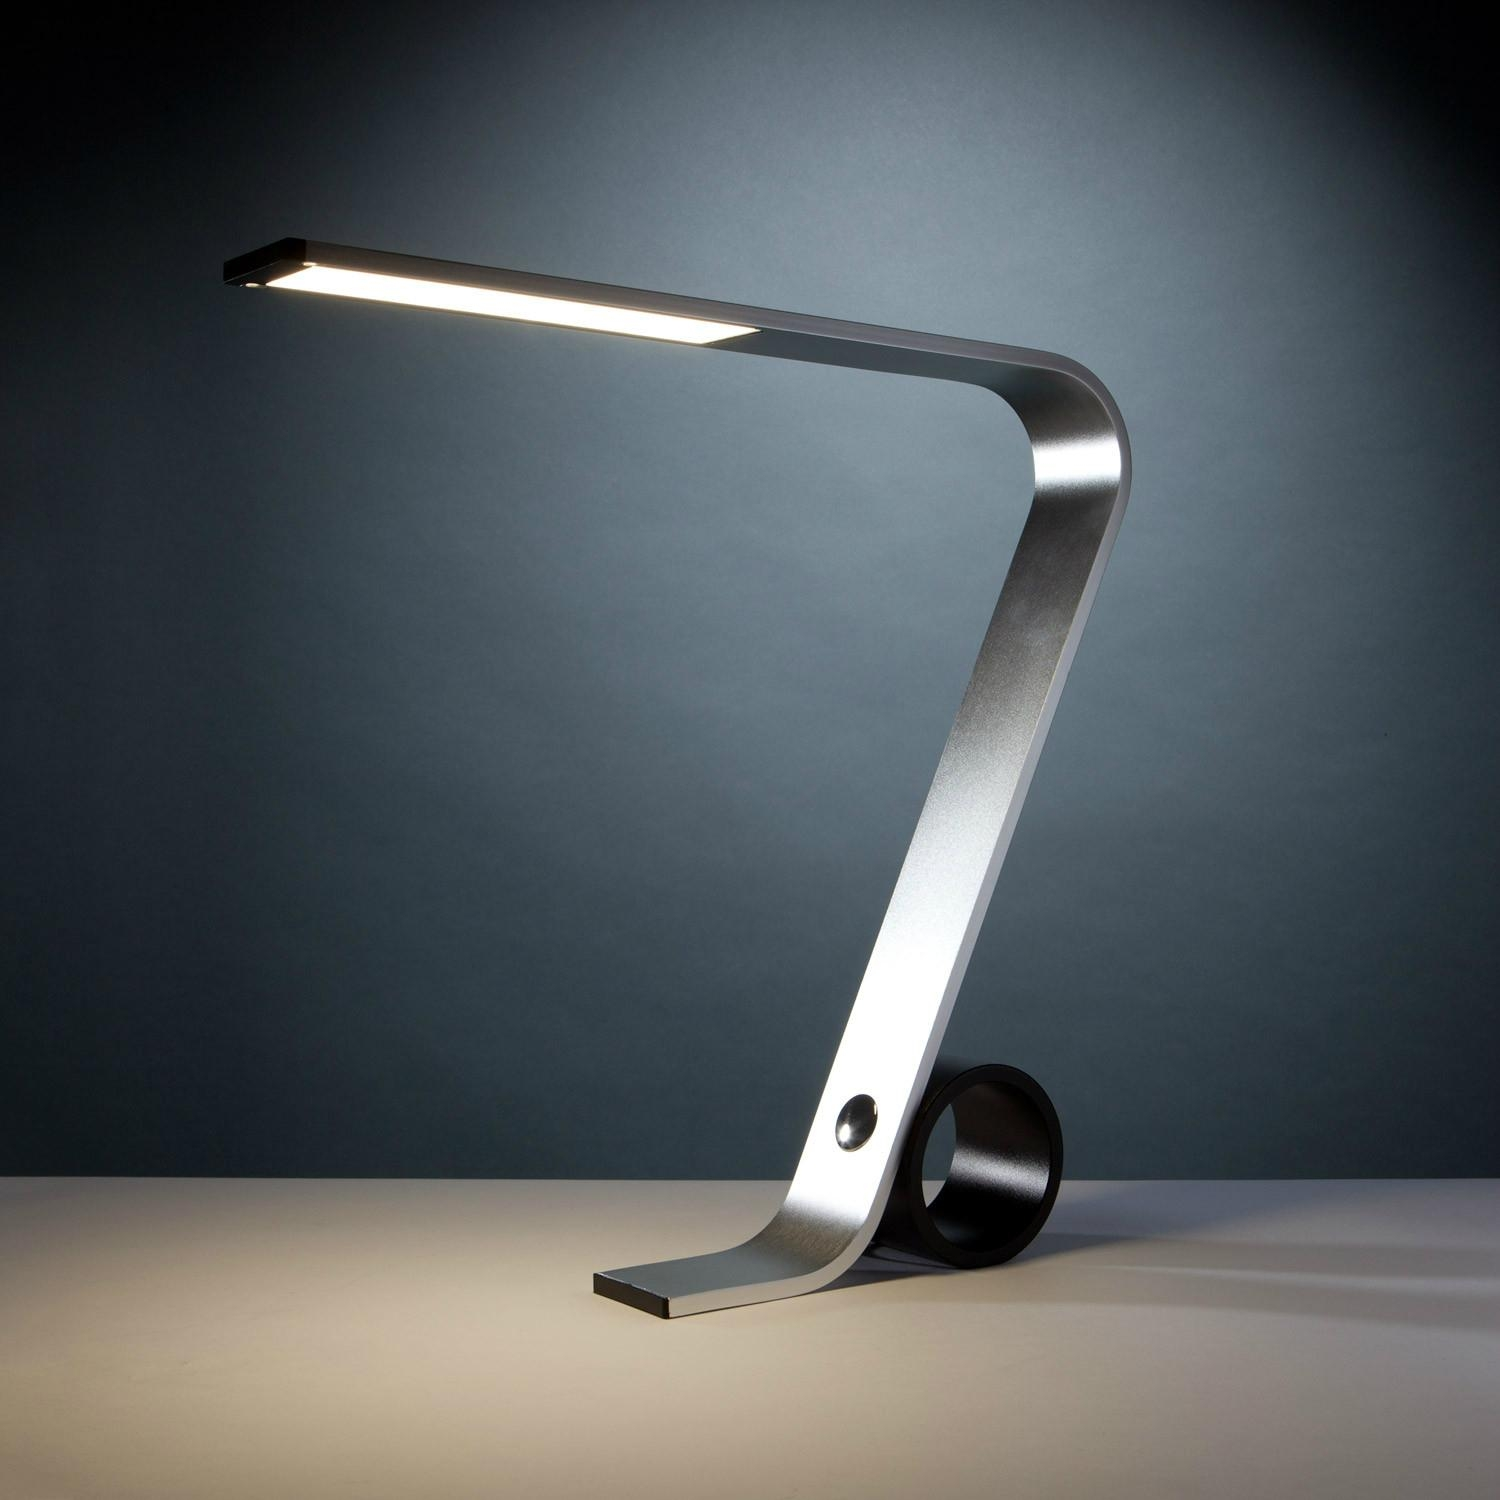 LED desk lamp with USB port & modern design - YT006 ...